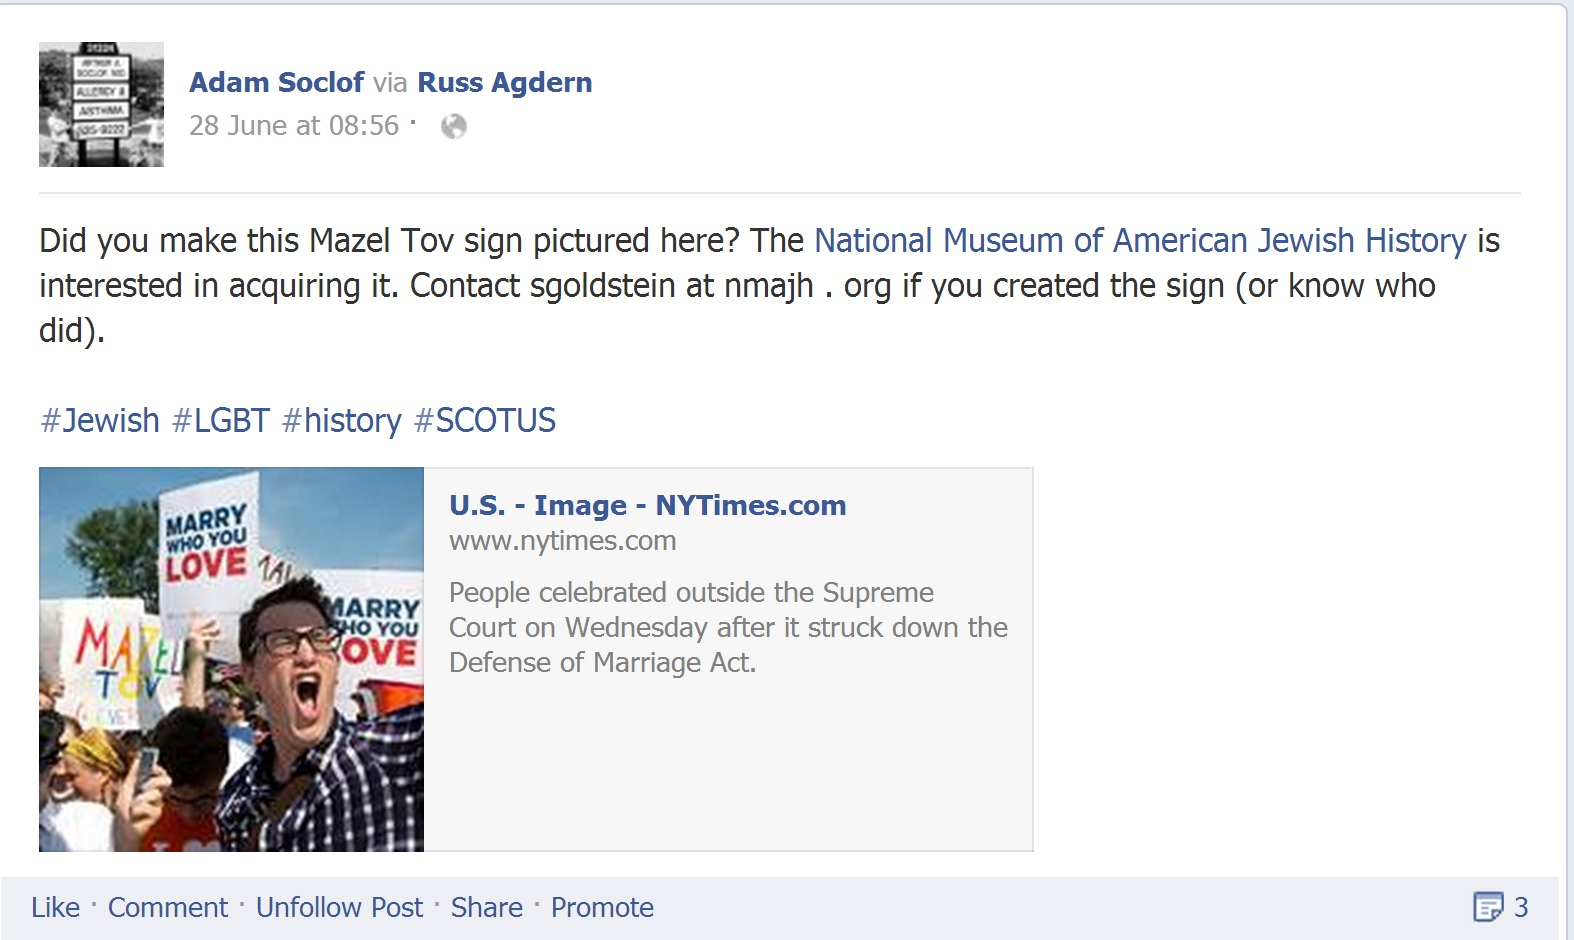 Facebook post searching for gay marriage Mazel Tov sign.